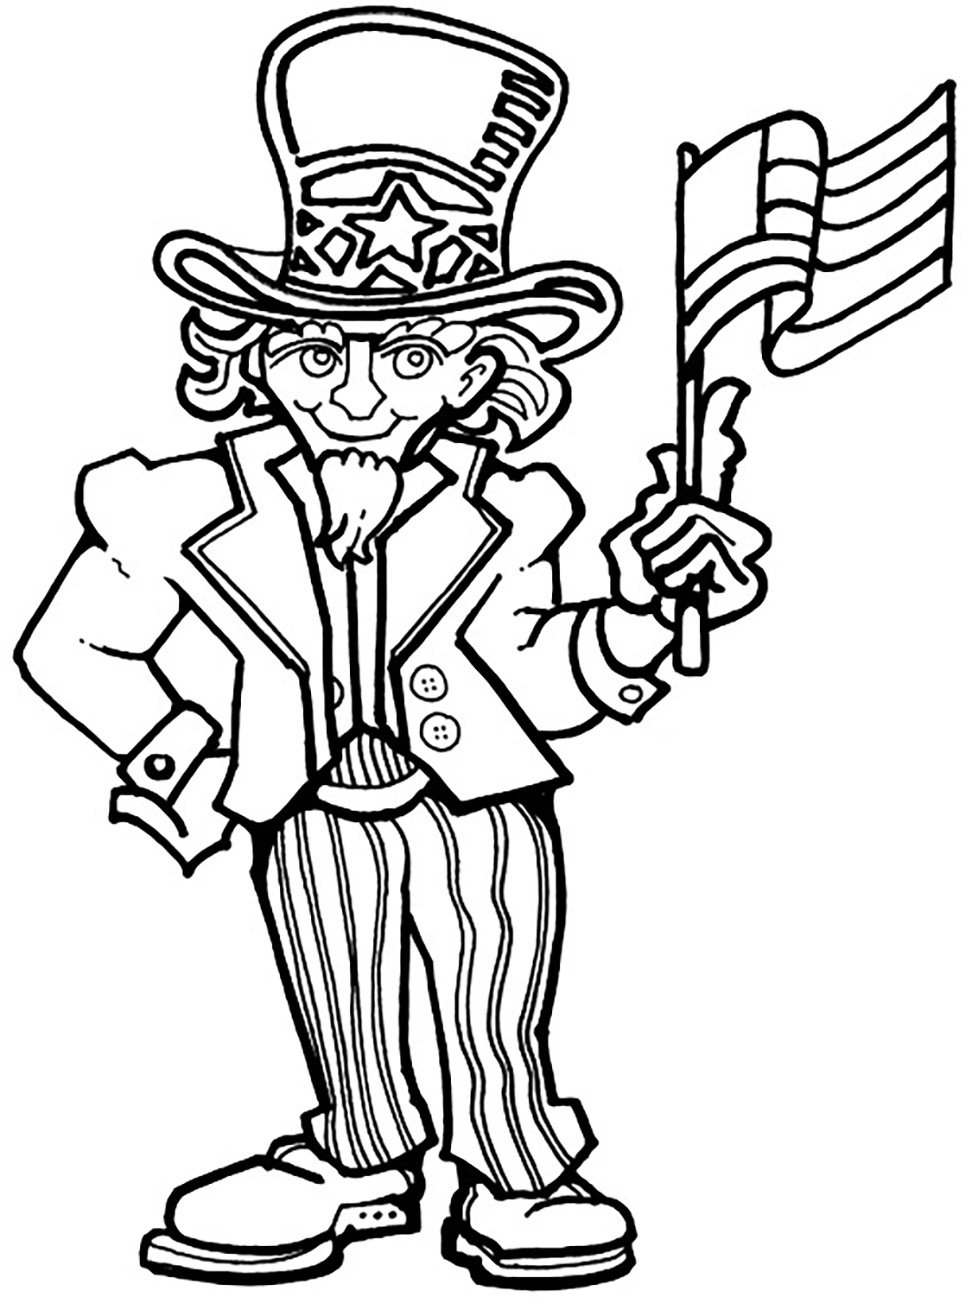 24 Presidents Day Coloring Pages Selection | FREE COLORING PAGES